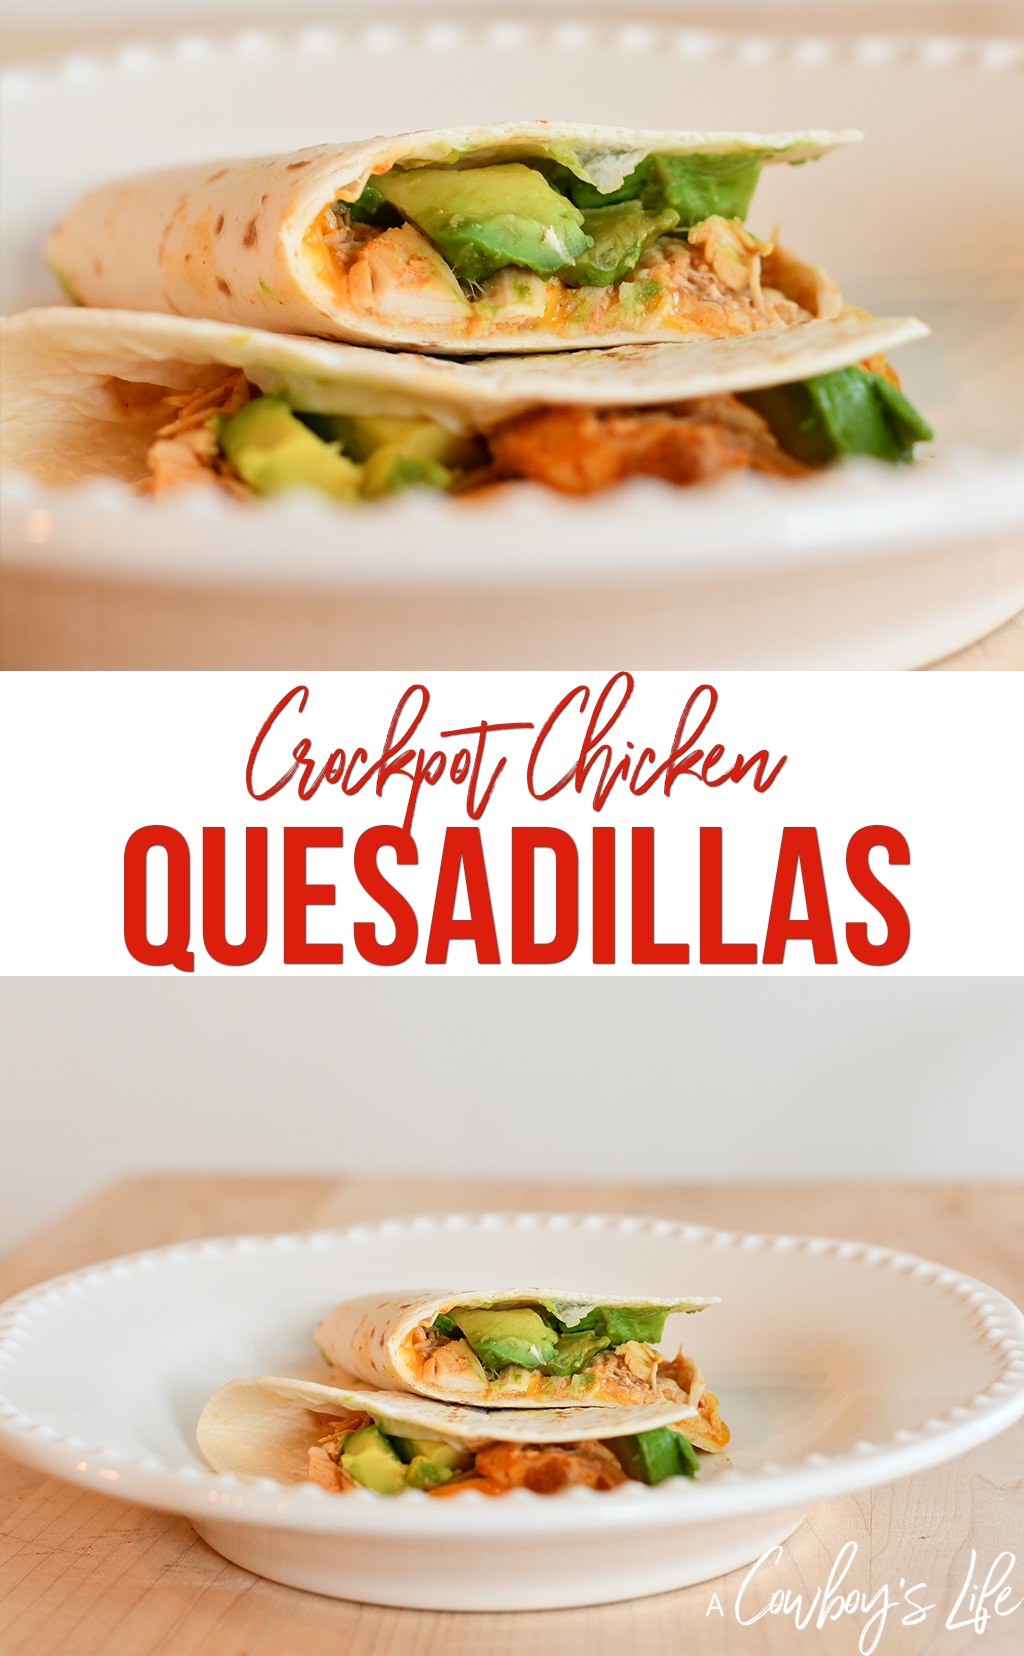 Crockpot chicken quesadillas are a great kid-friendly meal, easy to make and delicious!